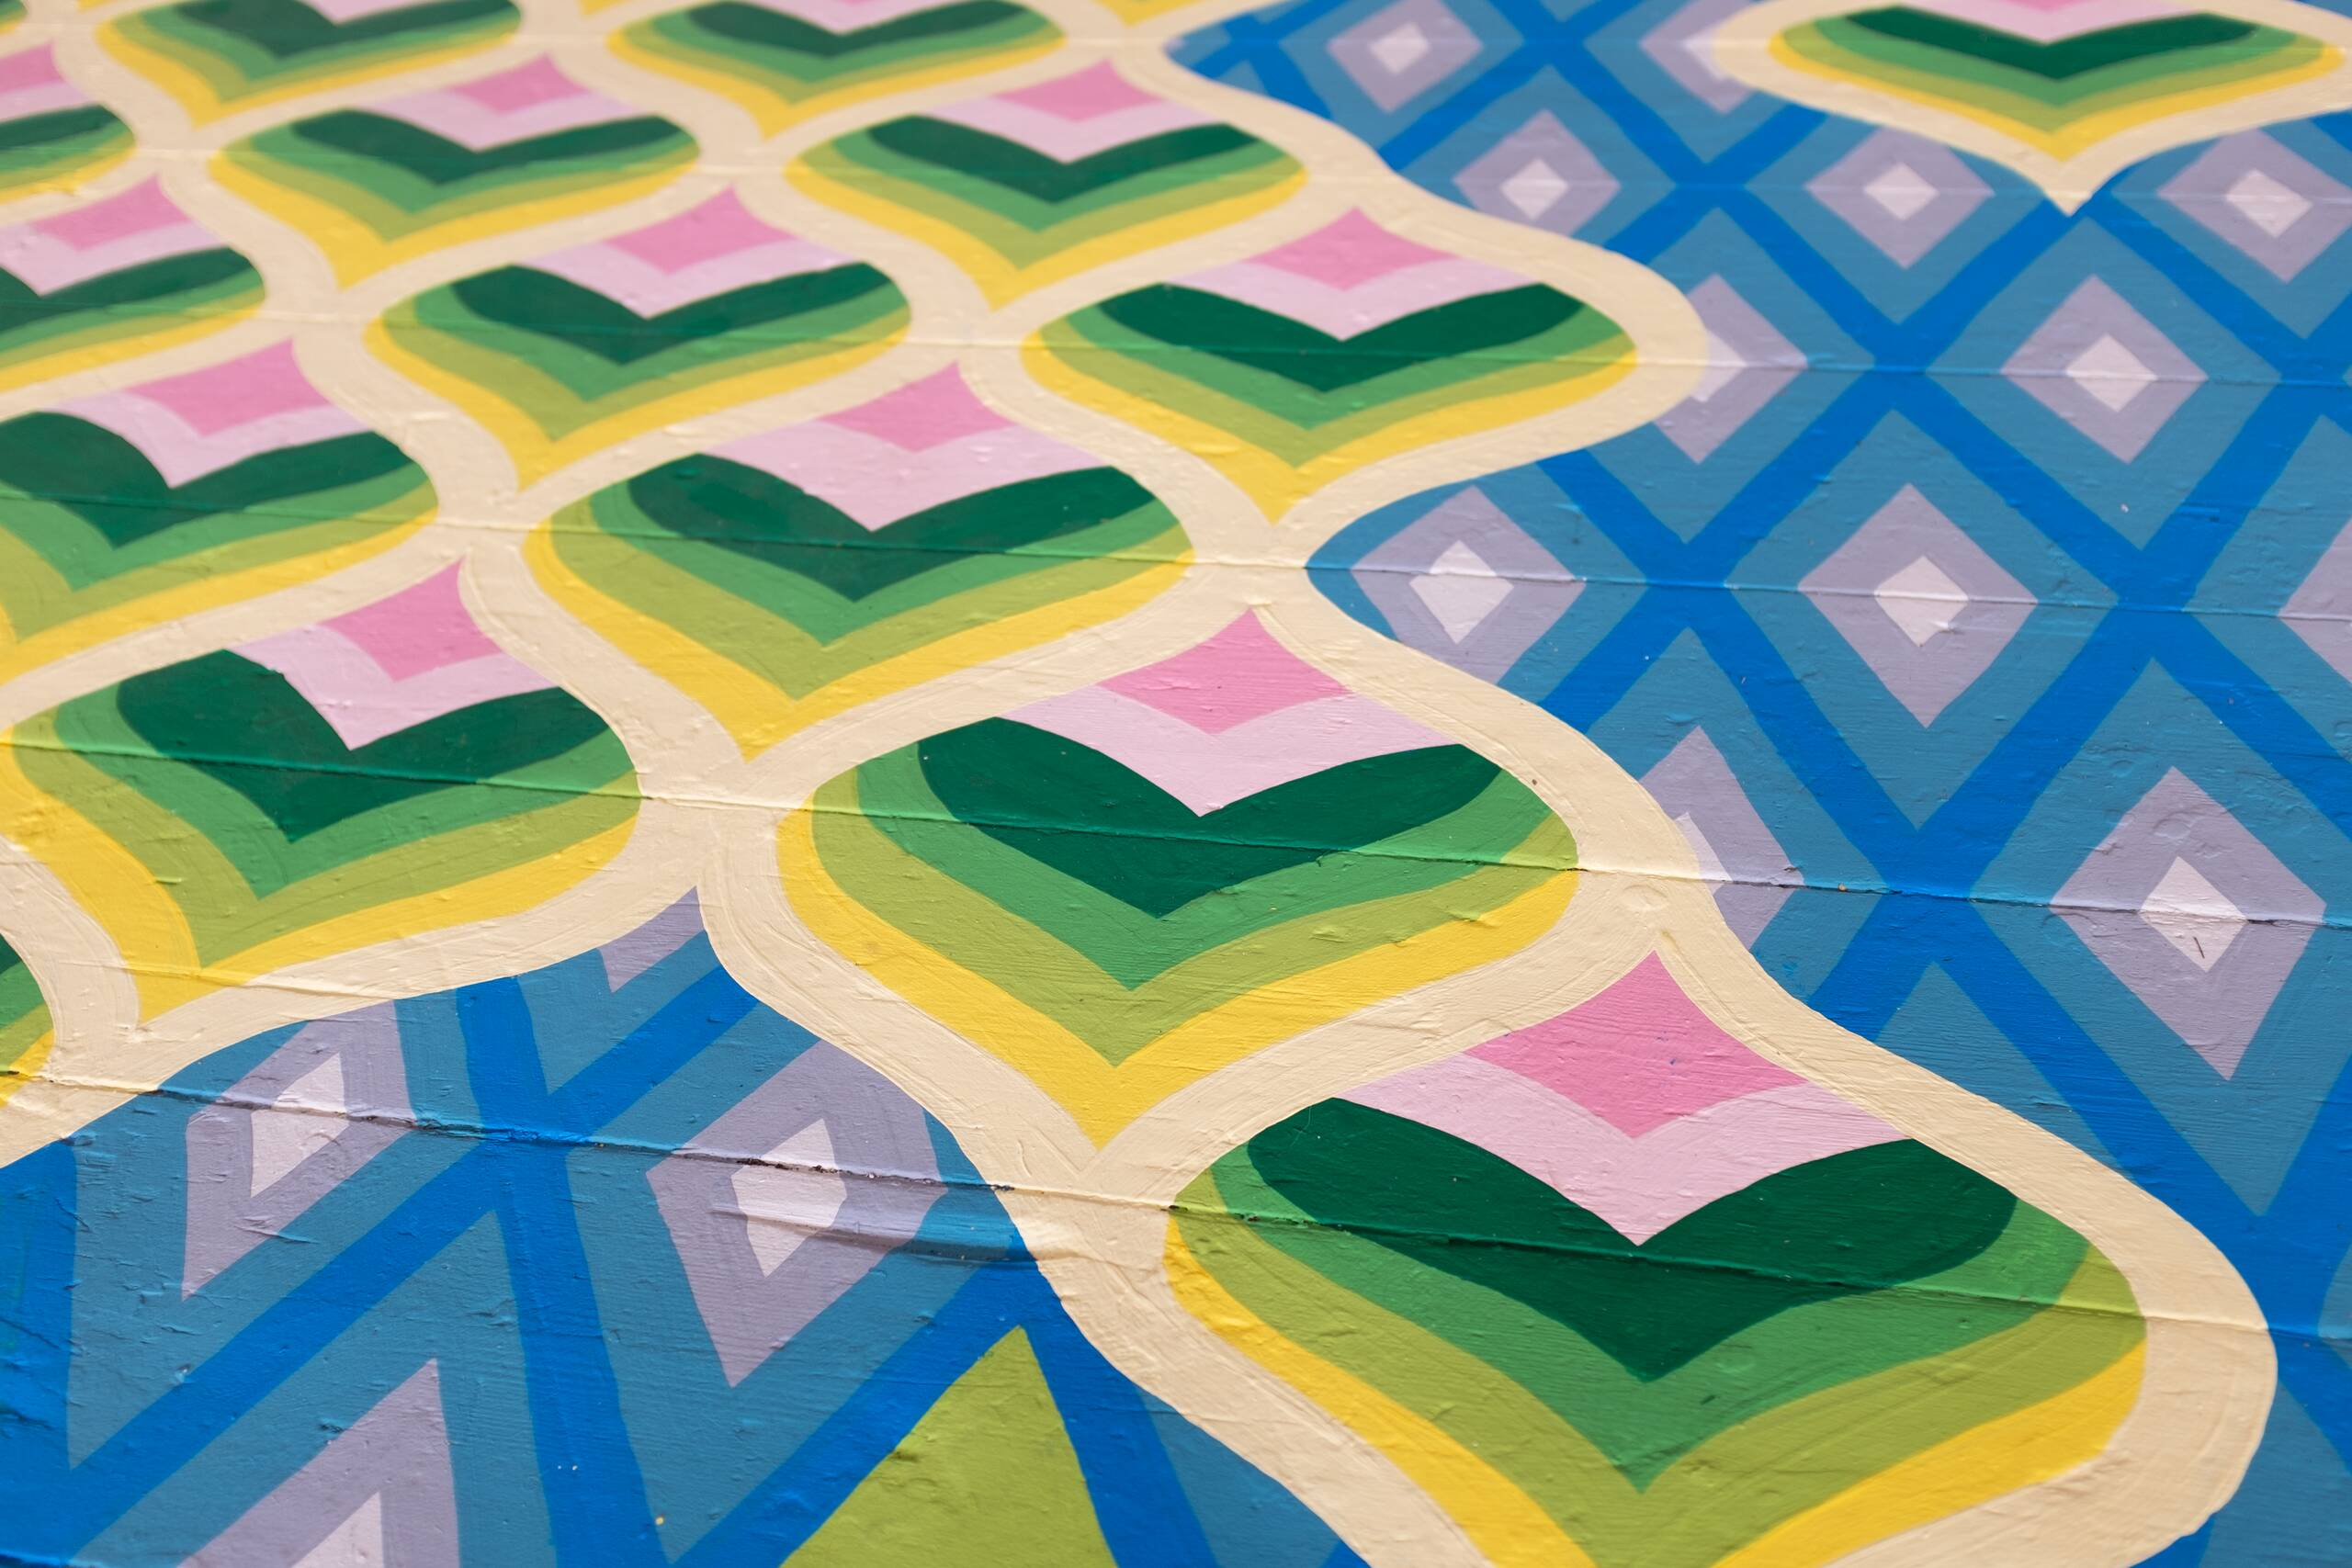 Bargello floor painting [green hearts and blue diamonds], House paint on floor, 2020